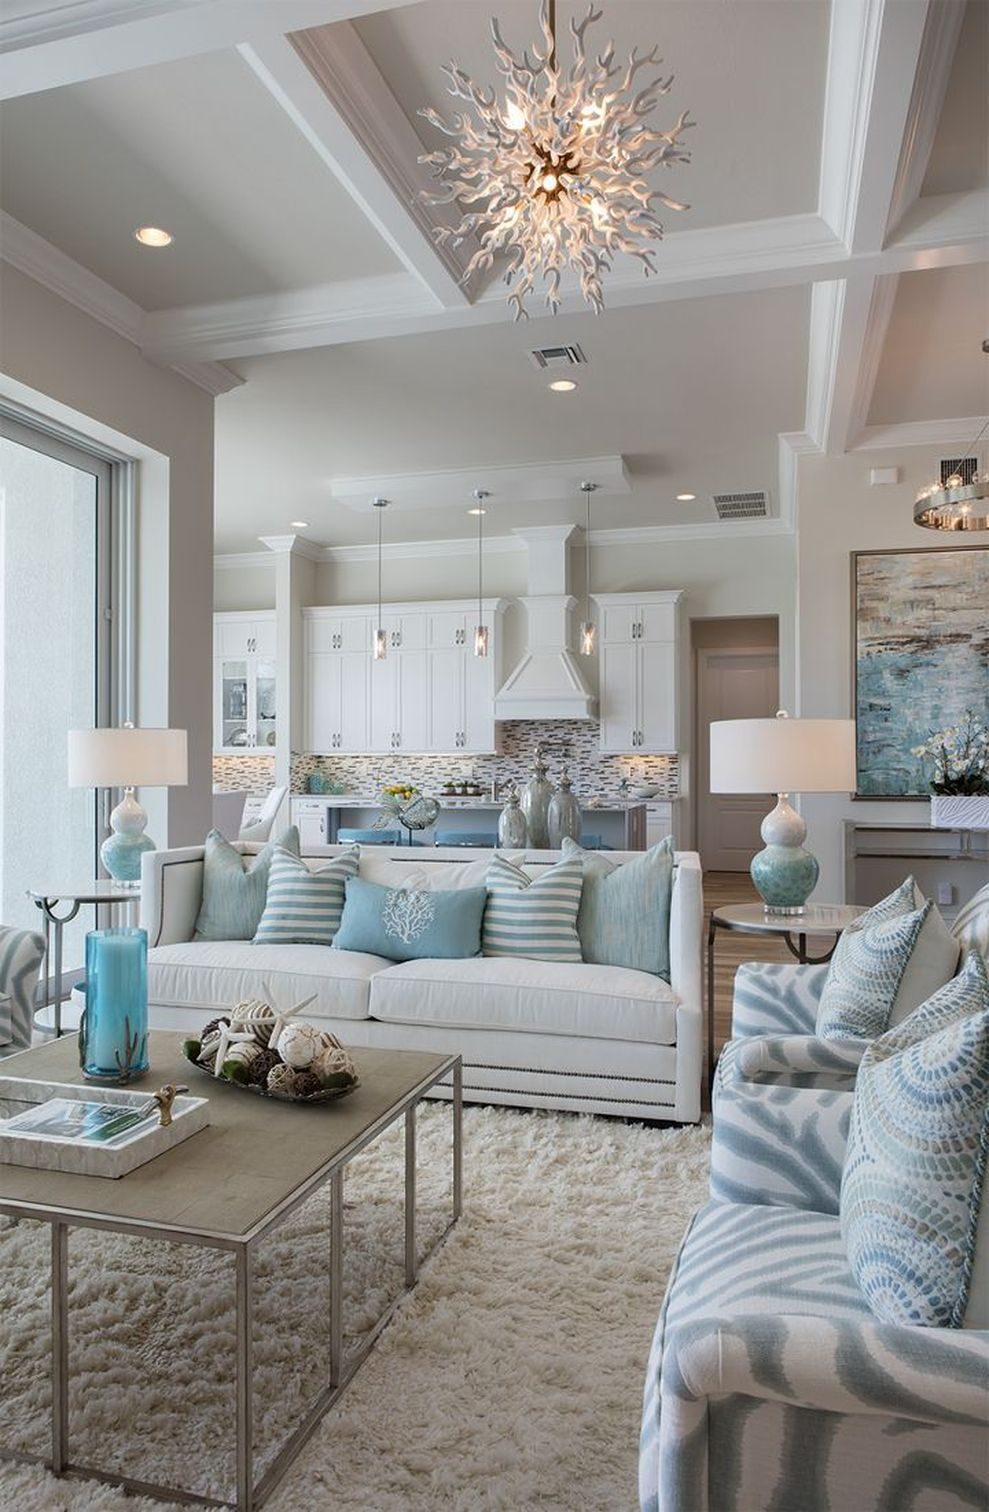 42 Incredible Teal And Silver Living Room Design Ideas Roundecor Good Living Room Colors Home Living Room Color